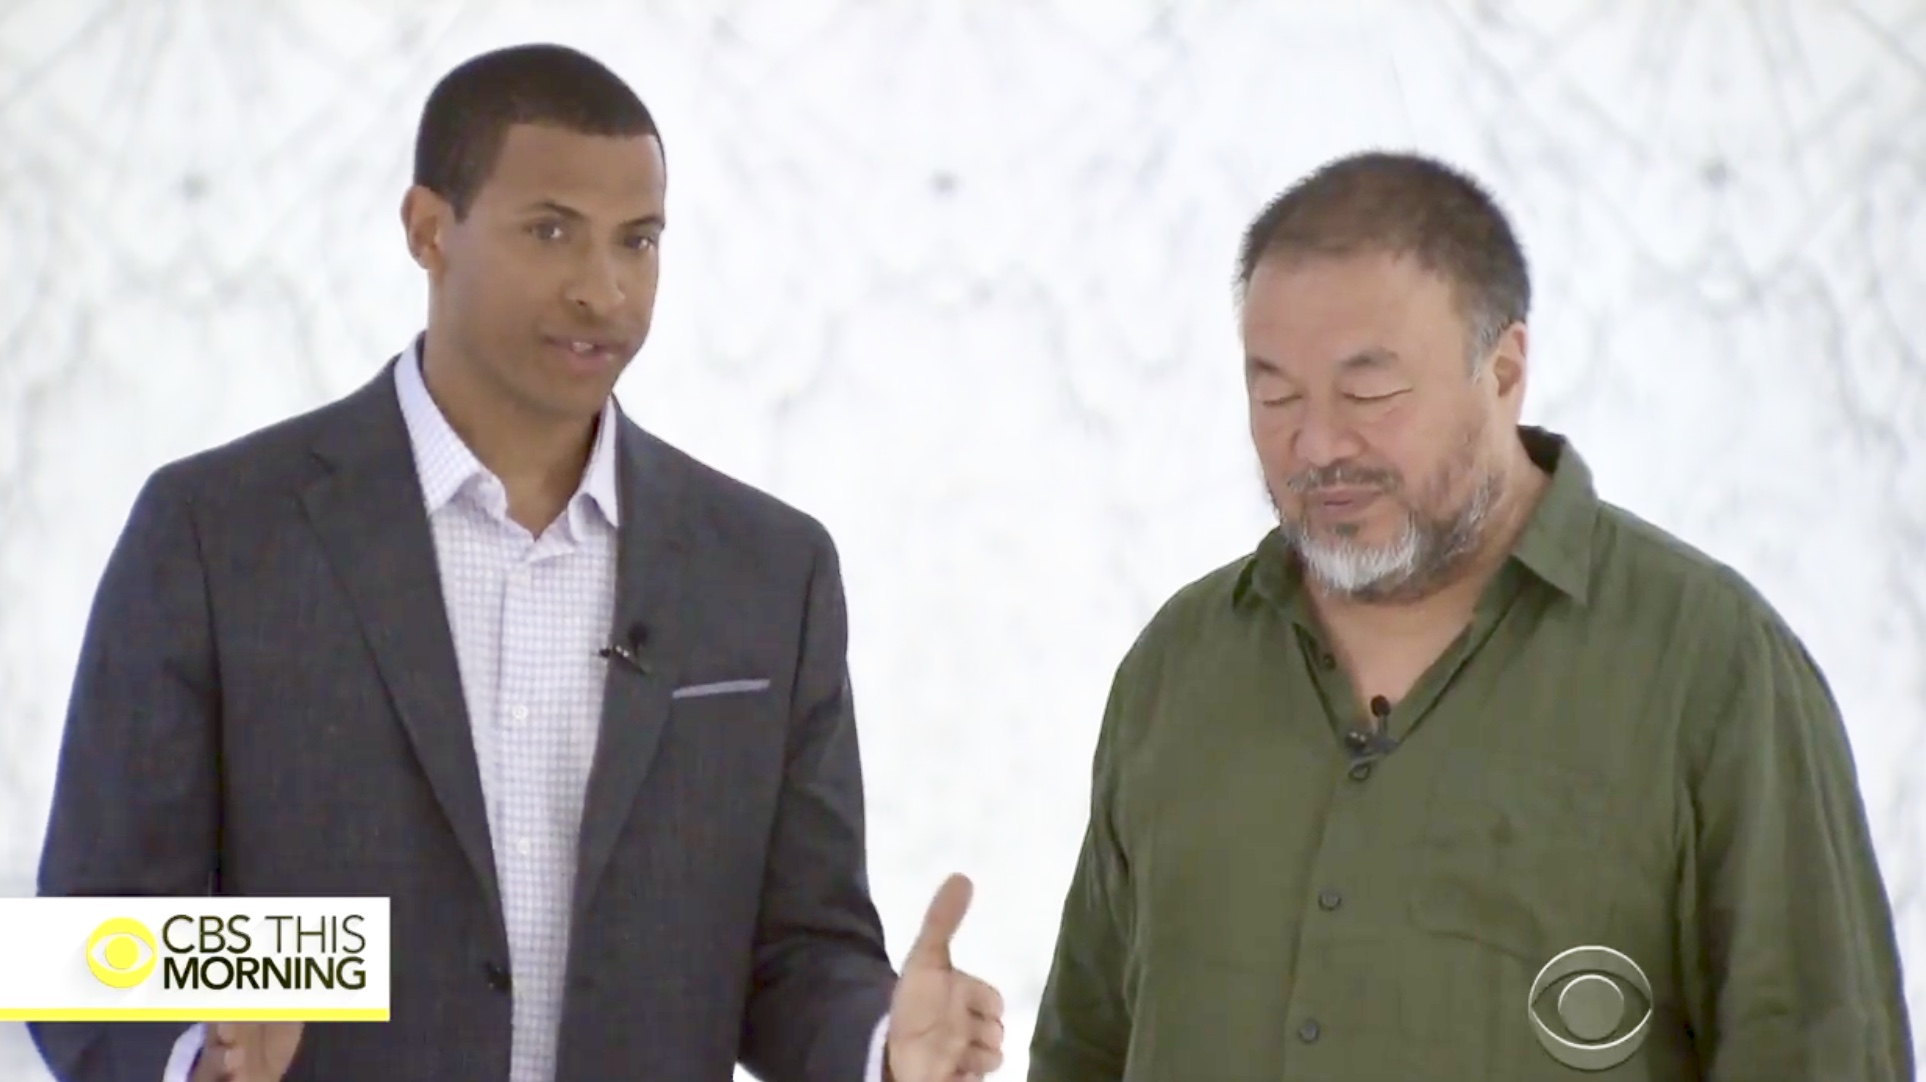 Chinese artist Ai Weiwei celebrates free speech in new D.C. exhibit